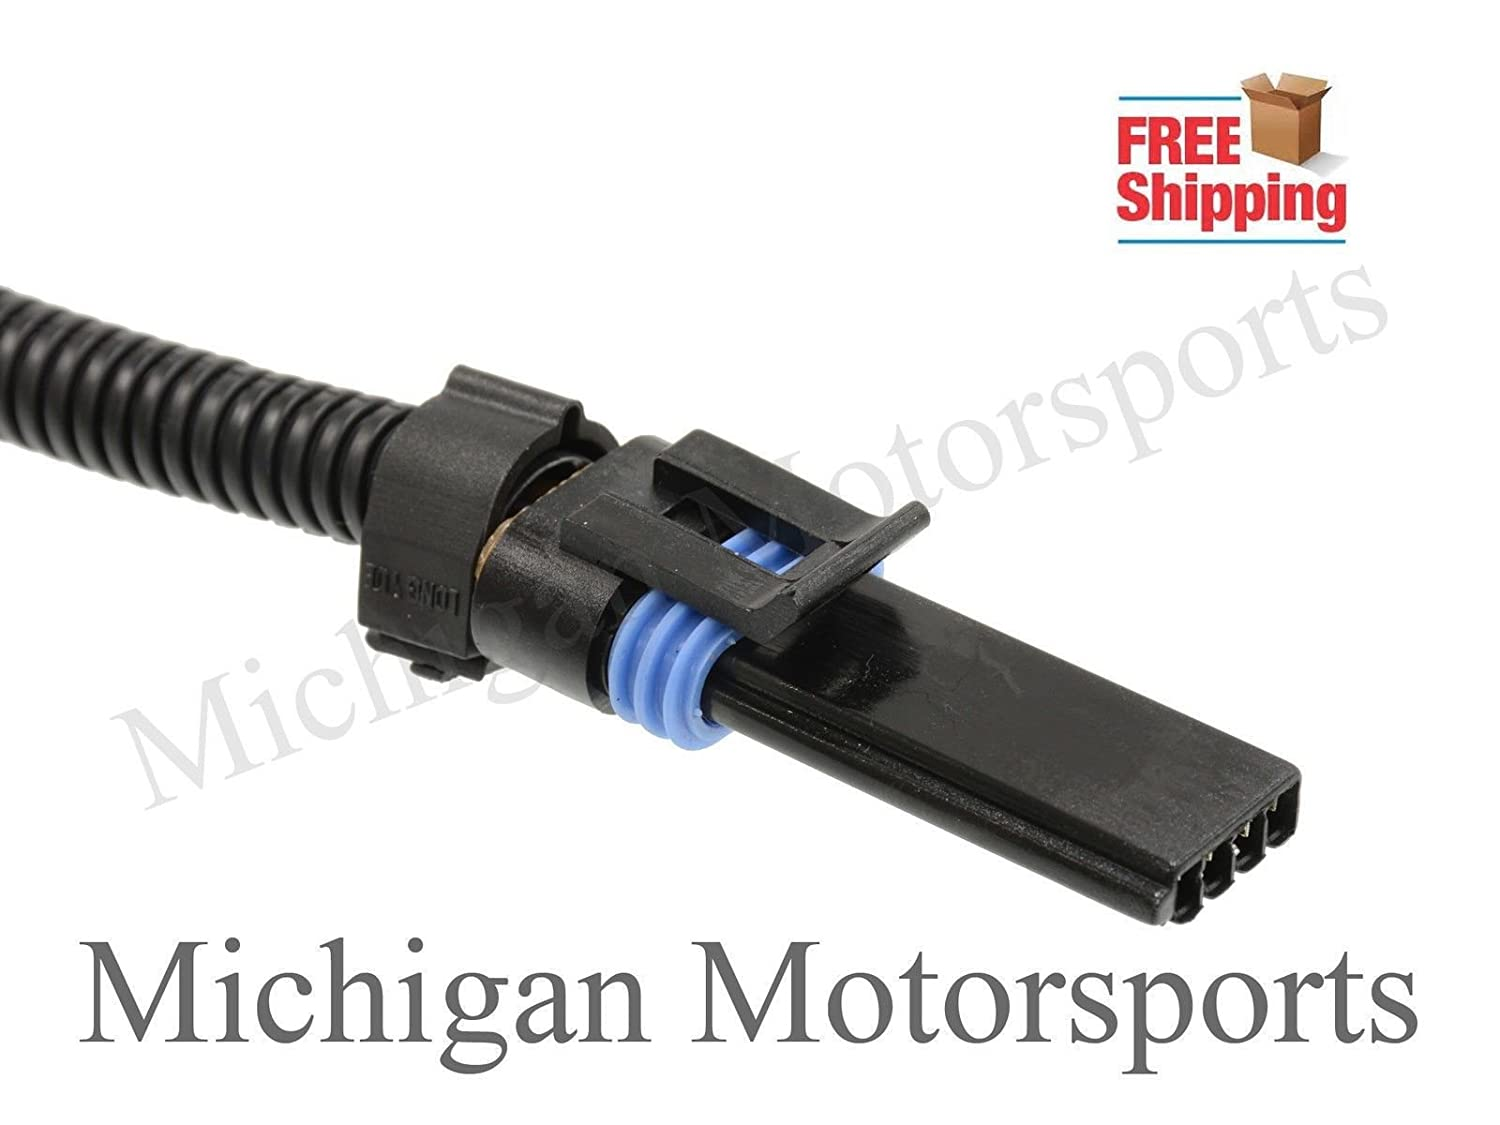 Amazon.com: Michigan Motorsports Optispark Vented Wiring Harness Connector  - Fits LT1 Camaro Firebird Distributor LT1 5.7L V8 Chevy Buick Pontiac: ...